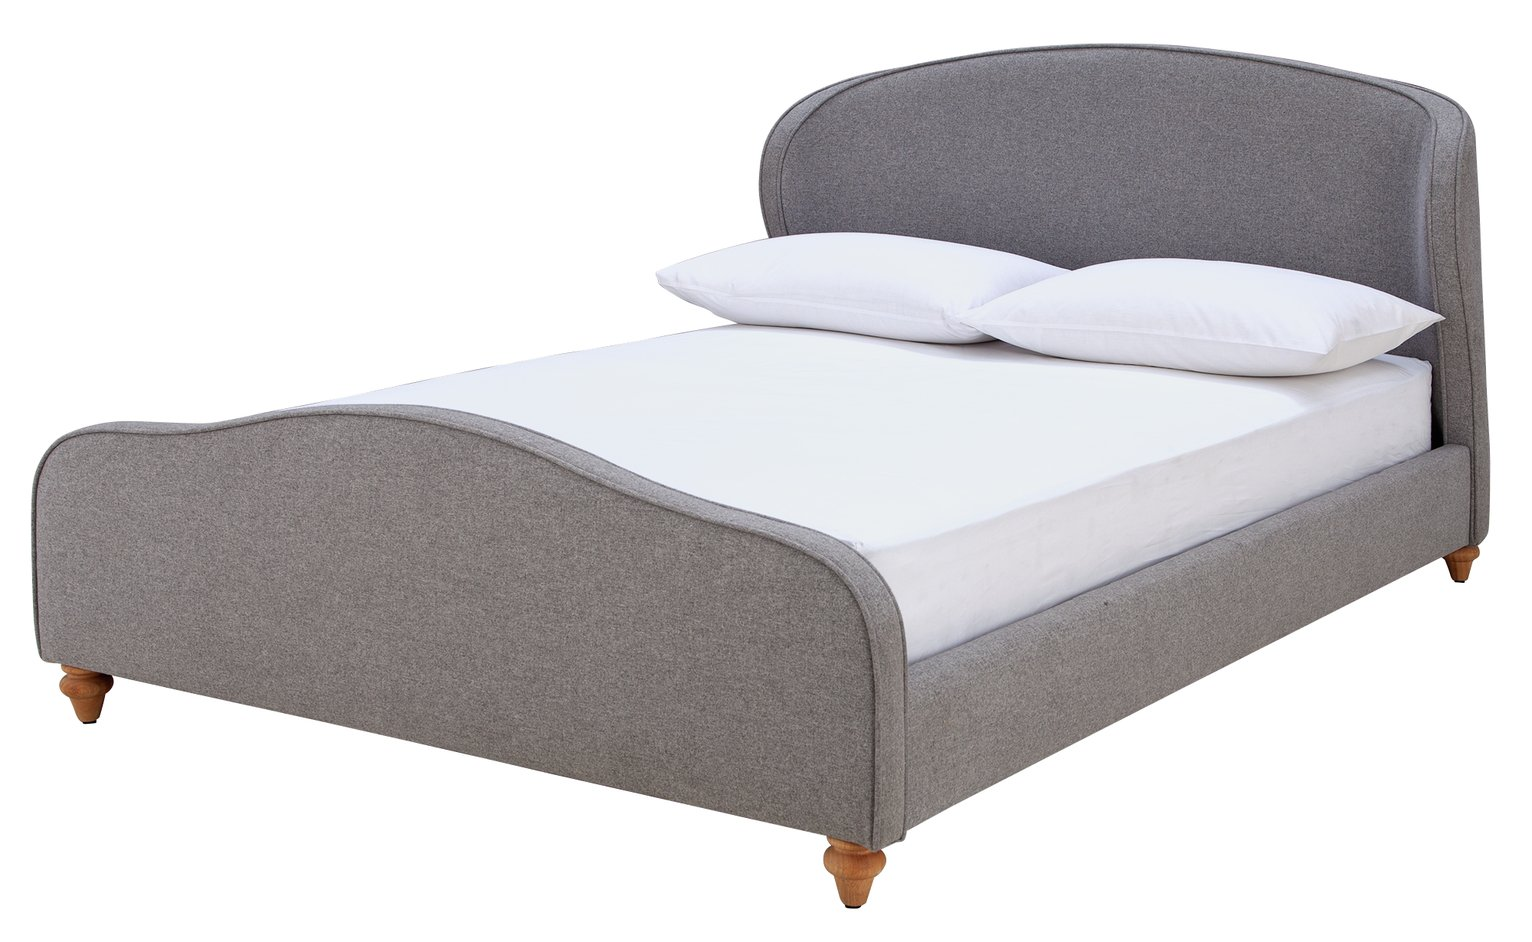 Argos Home Beauford Double Bed Frame - Grey